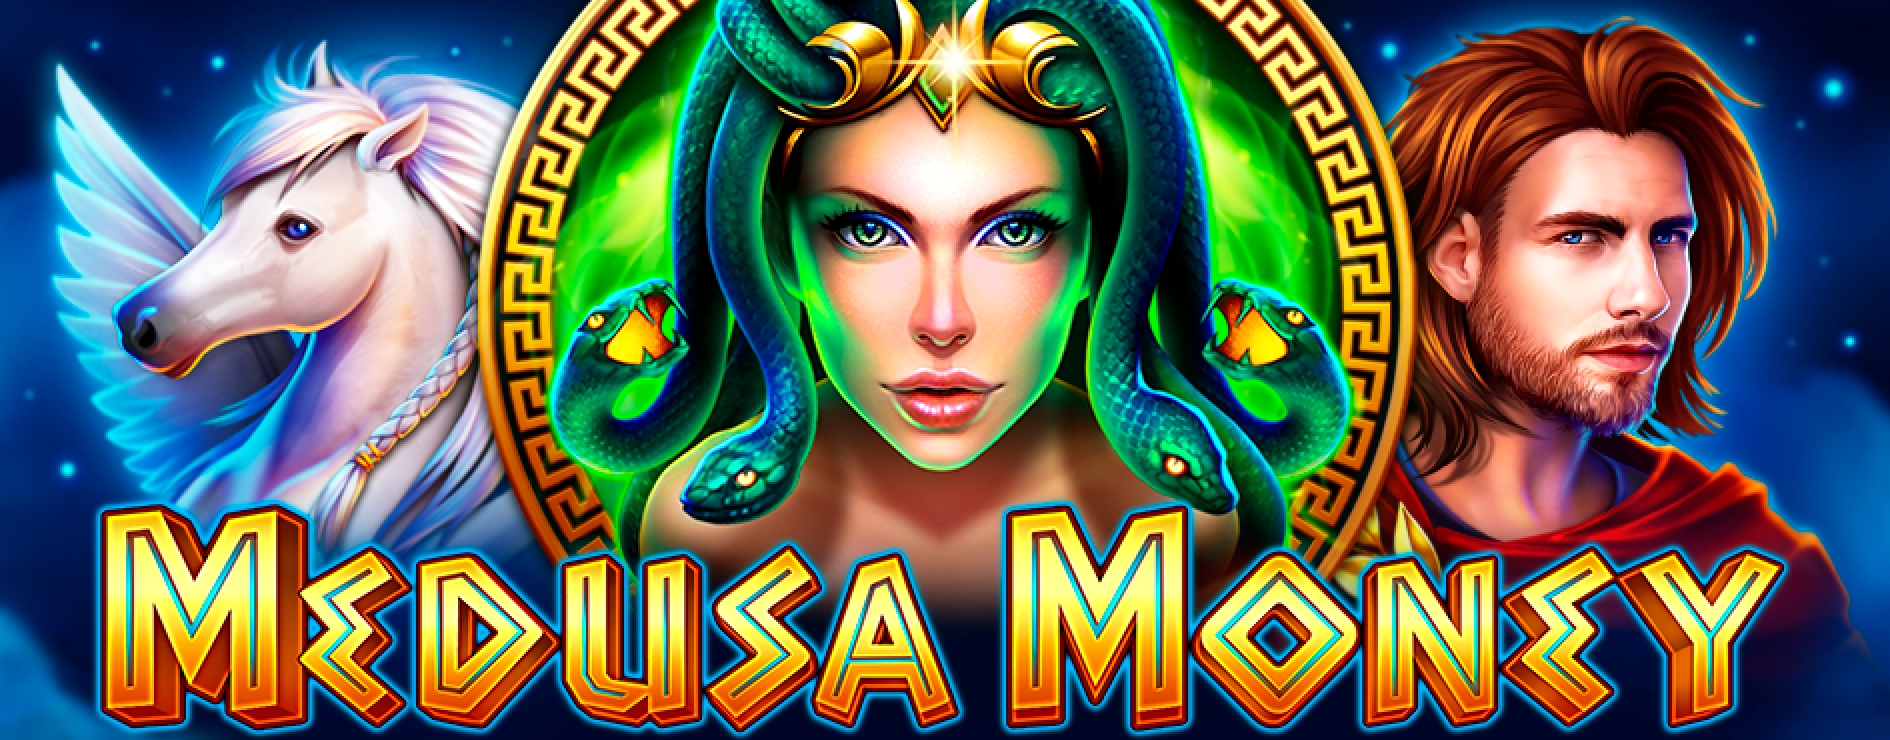 Medusa Money Online Slot Demo Game by RubyPlay